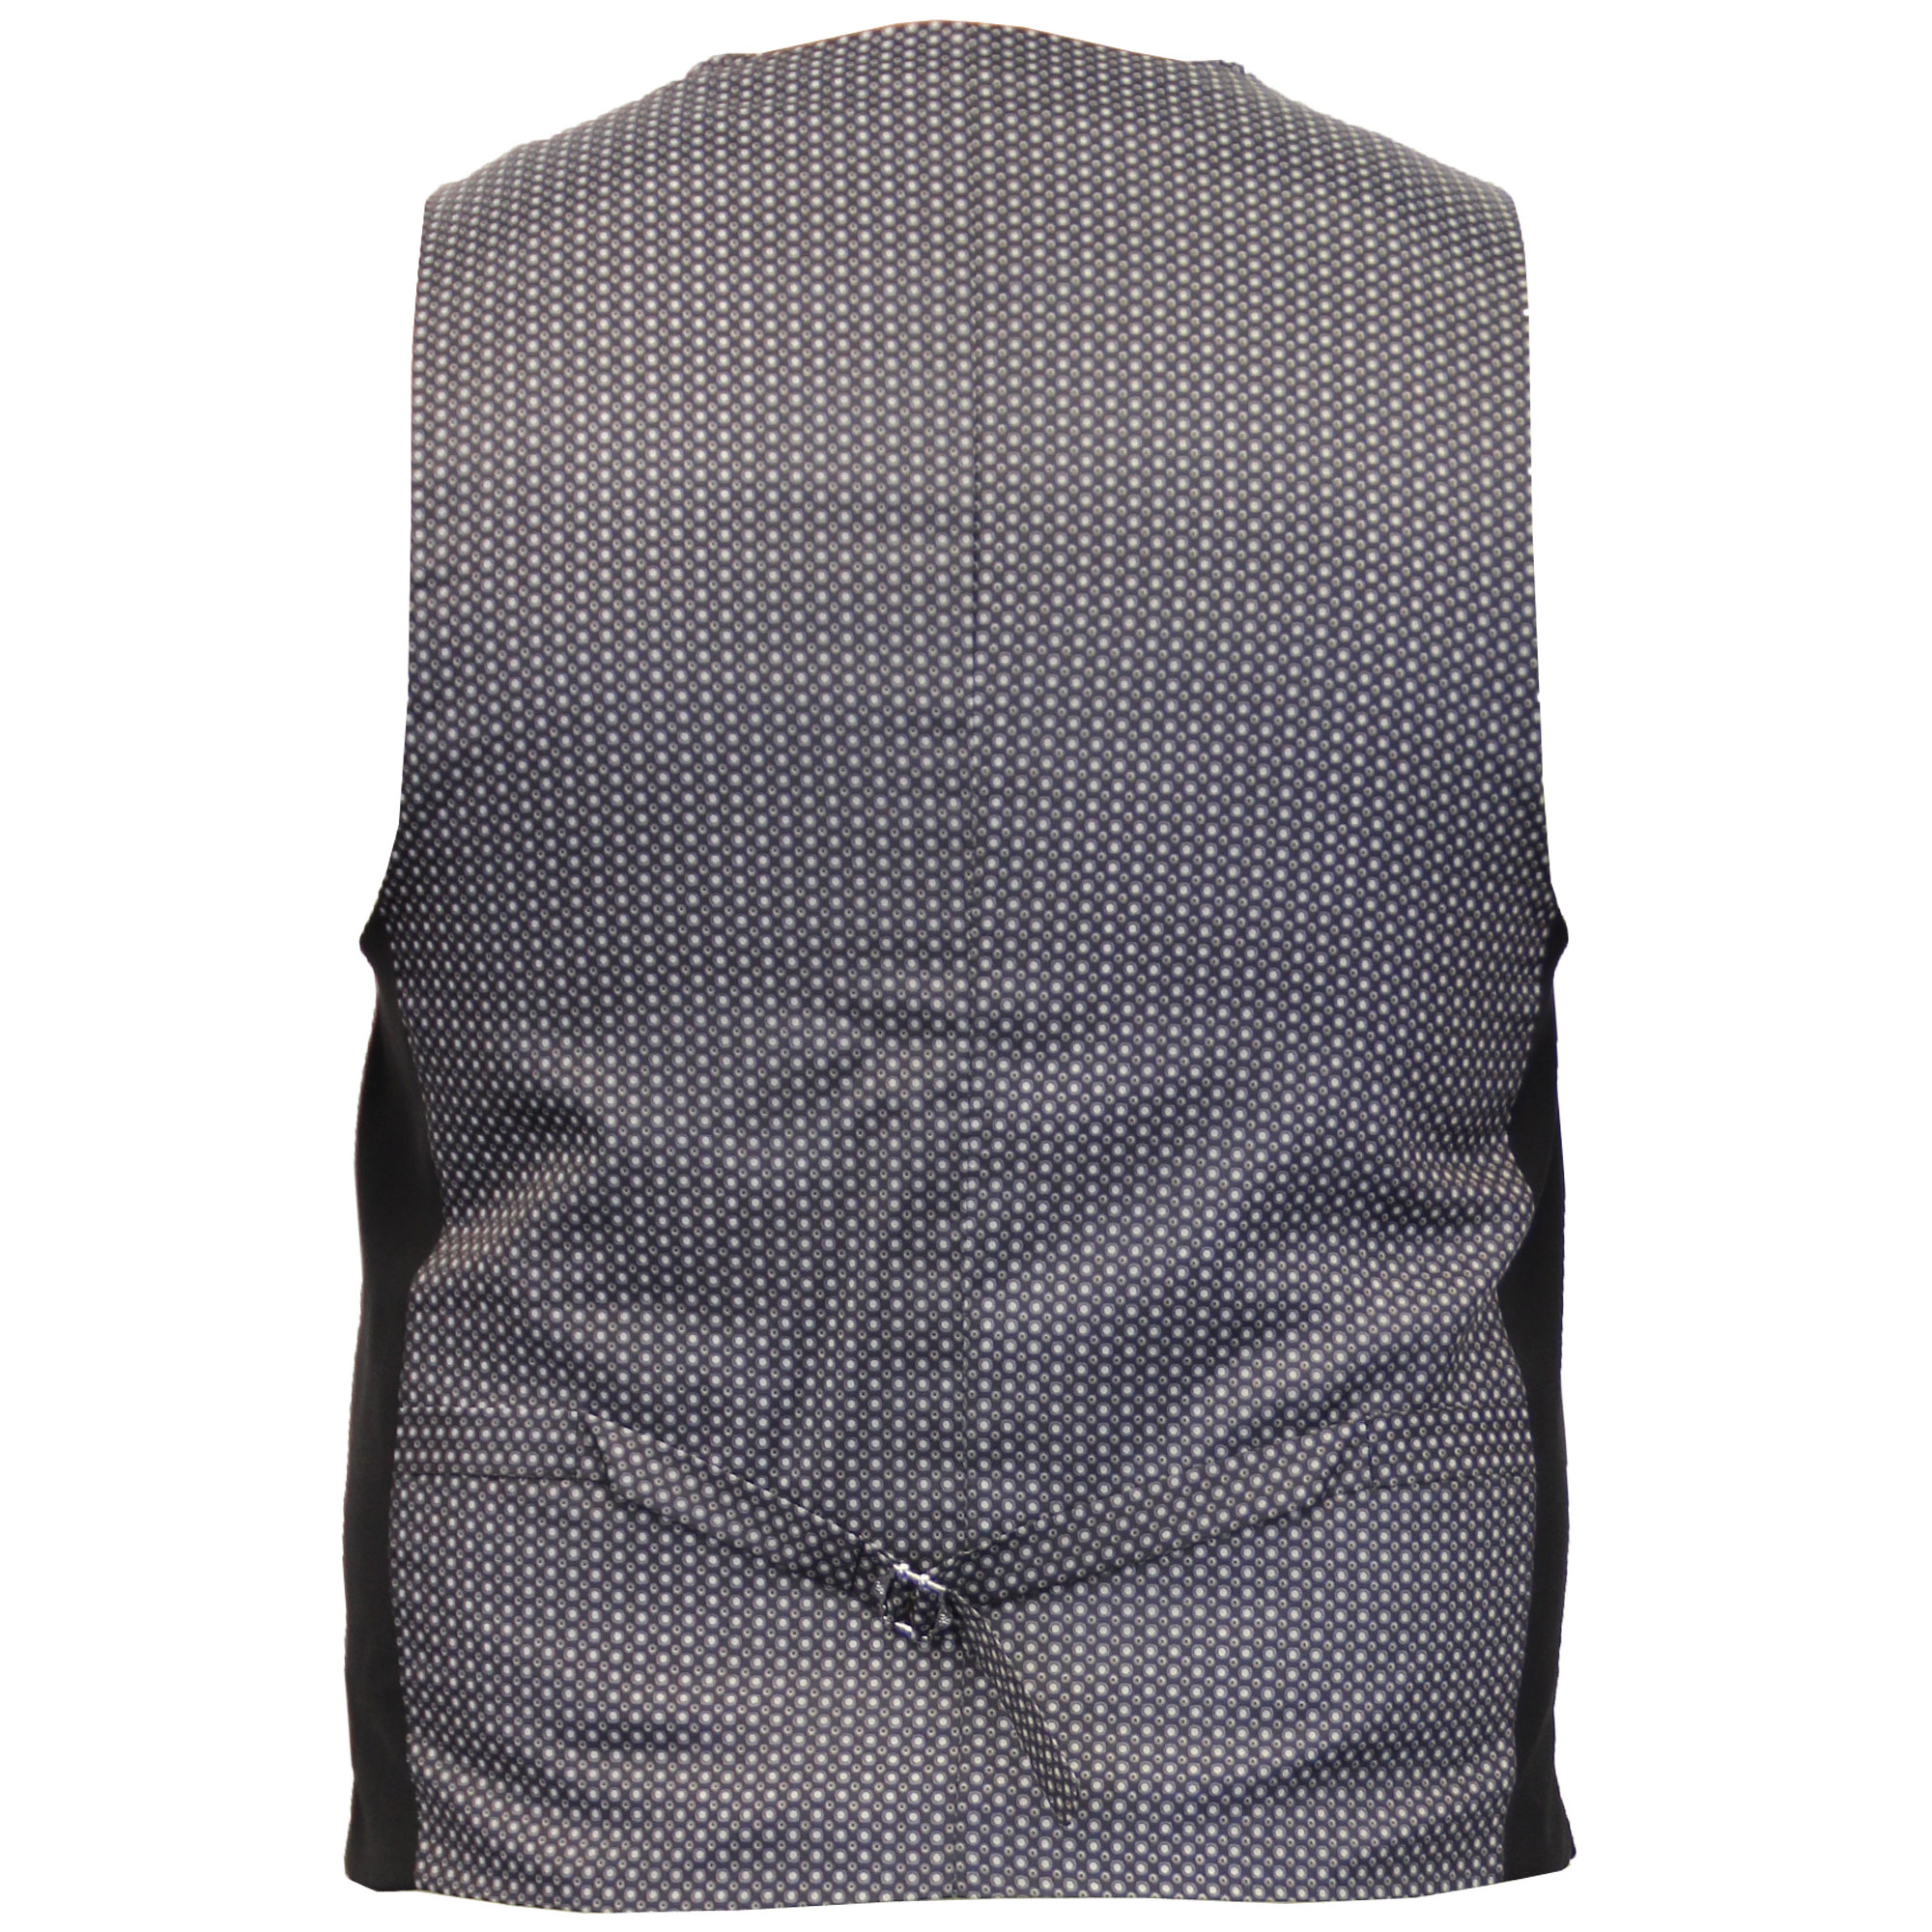 Mens-Wool-Mix-Herringbone-Tweed-Formal-Vest-Check-Waistcoat-By-Cavani-Crespo thumbnail 3